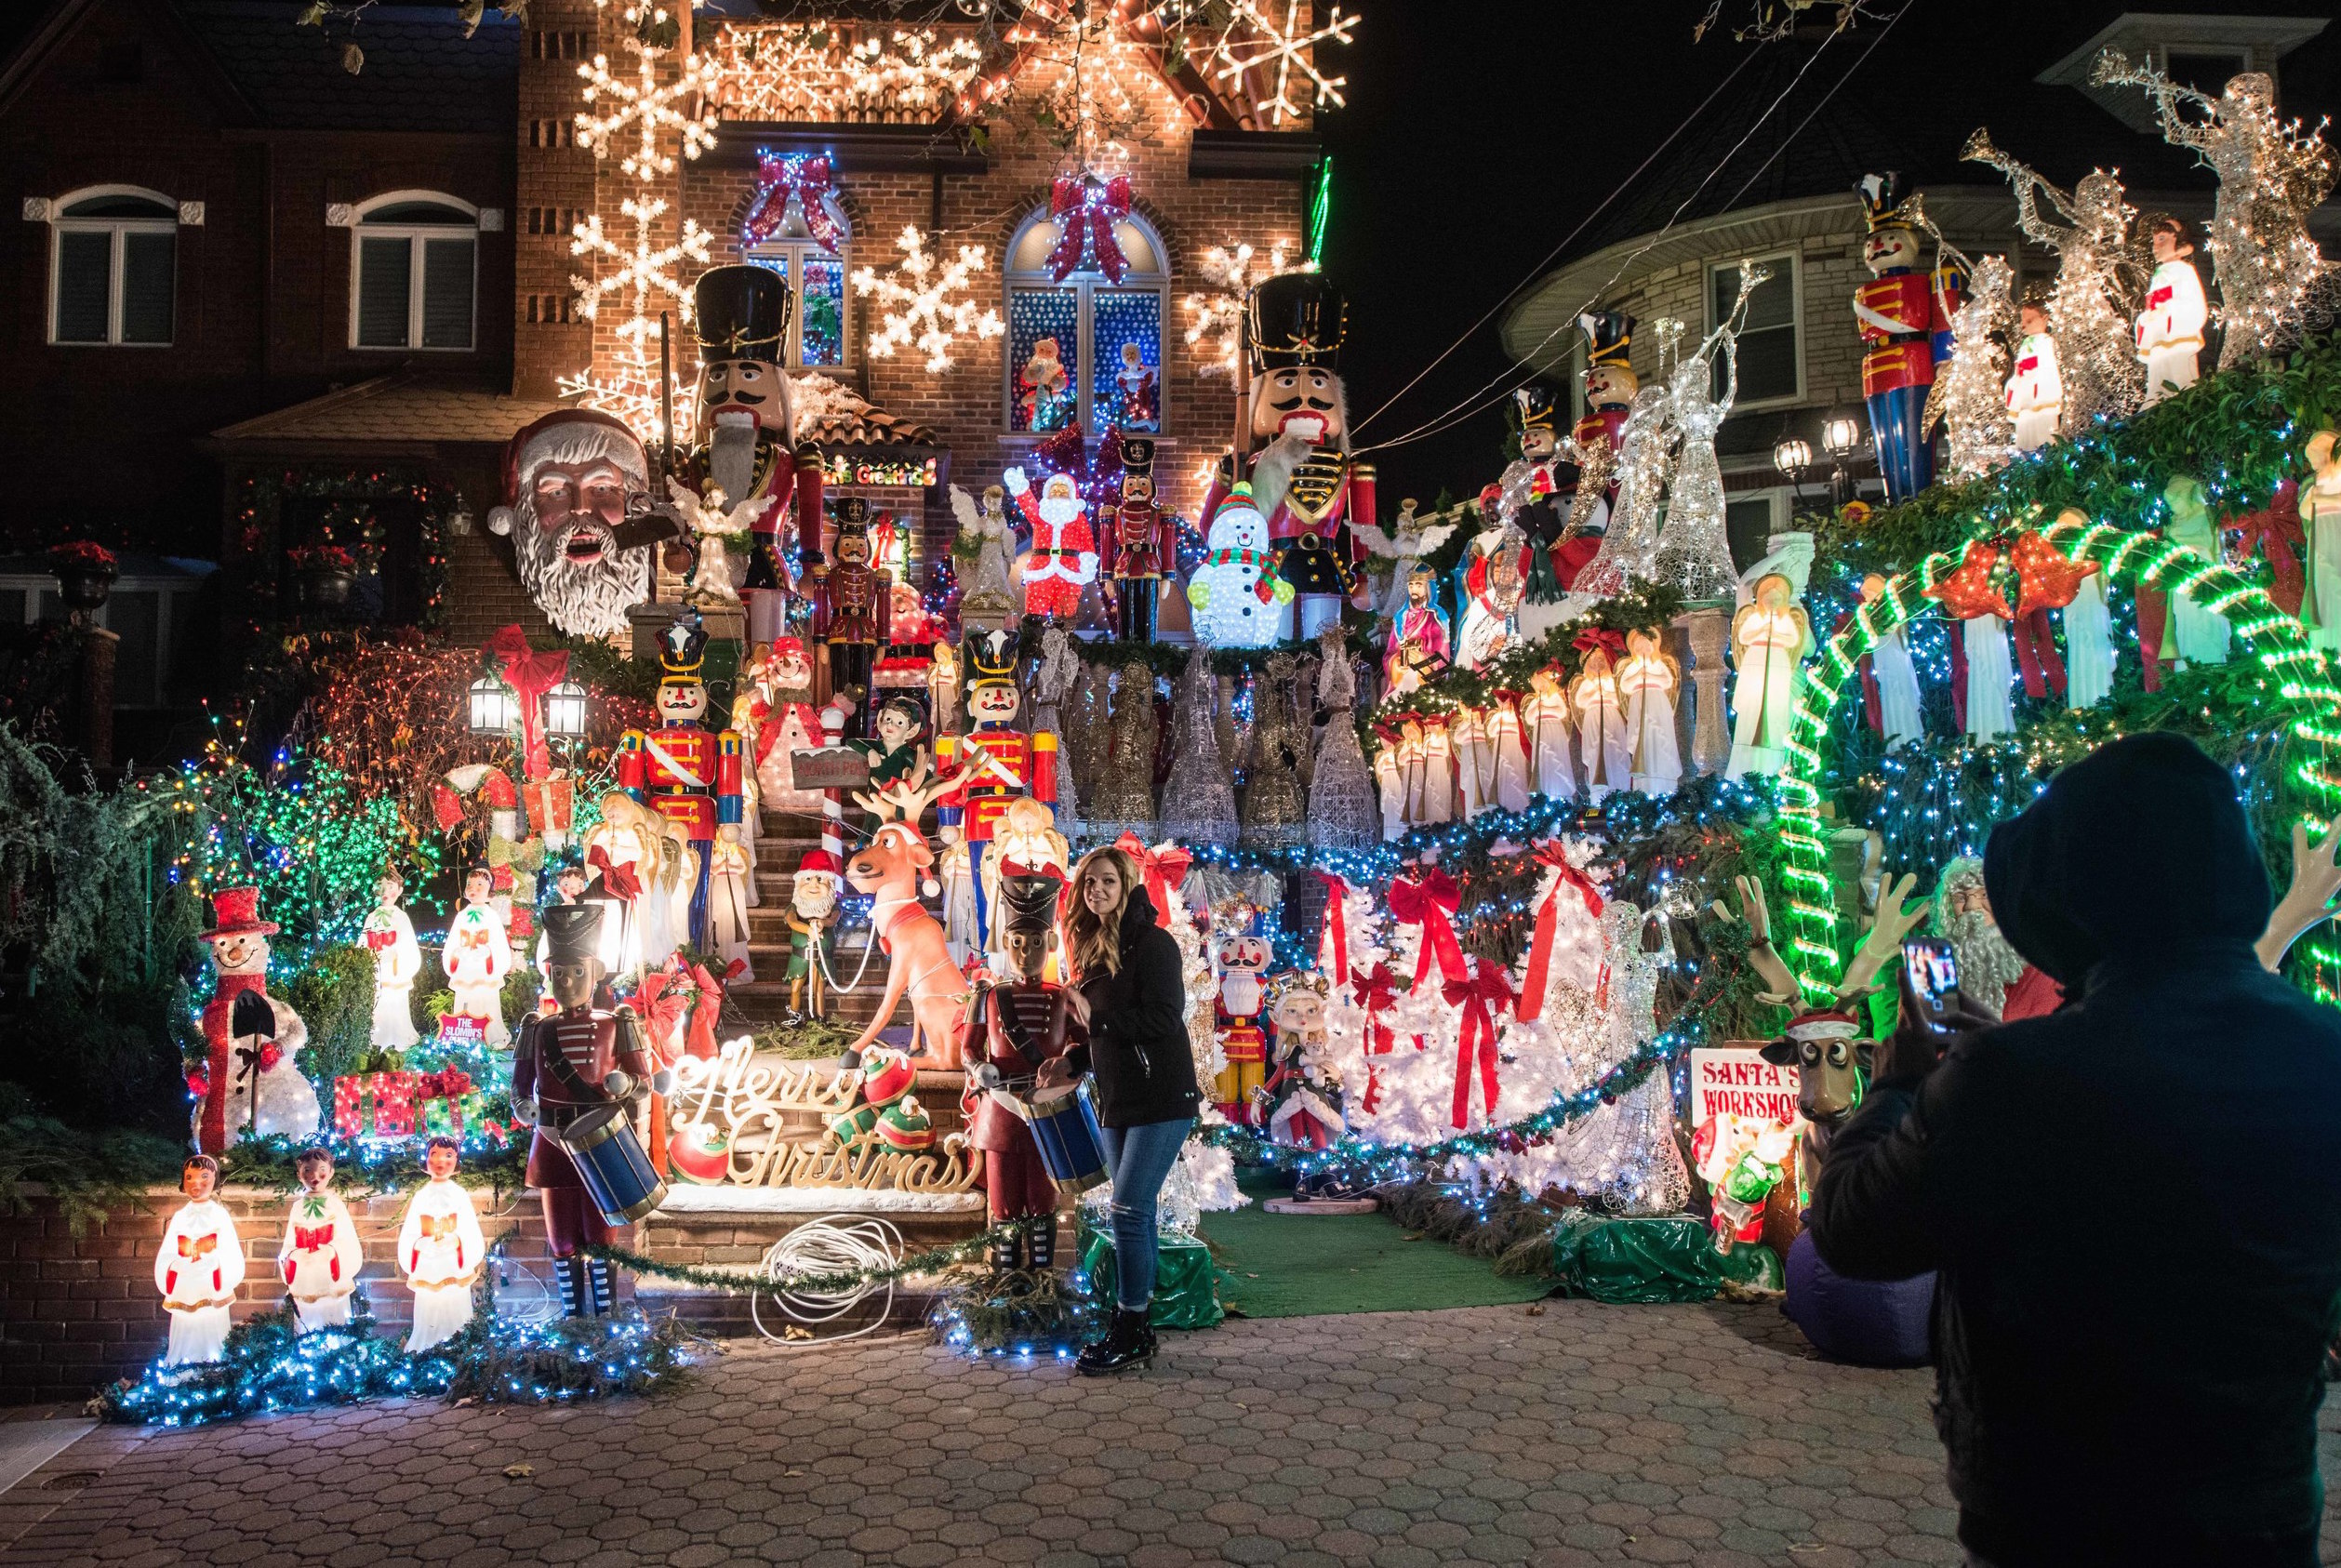 The Dyker Heights Christmas Lights 2019 guide